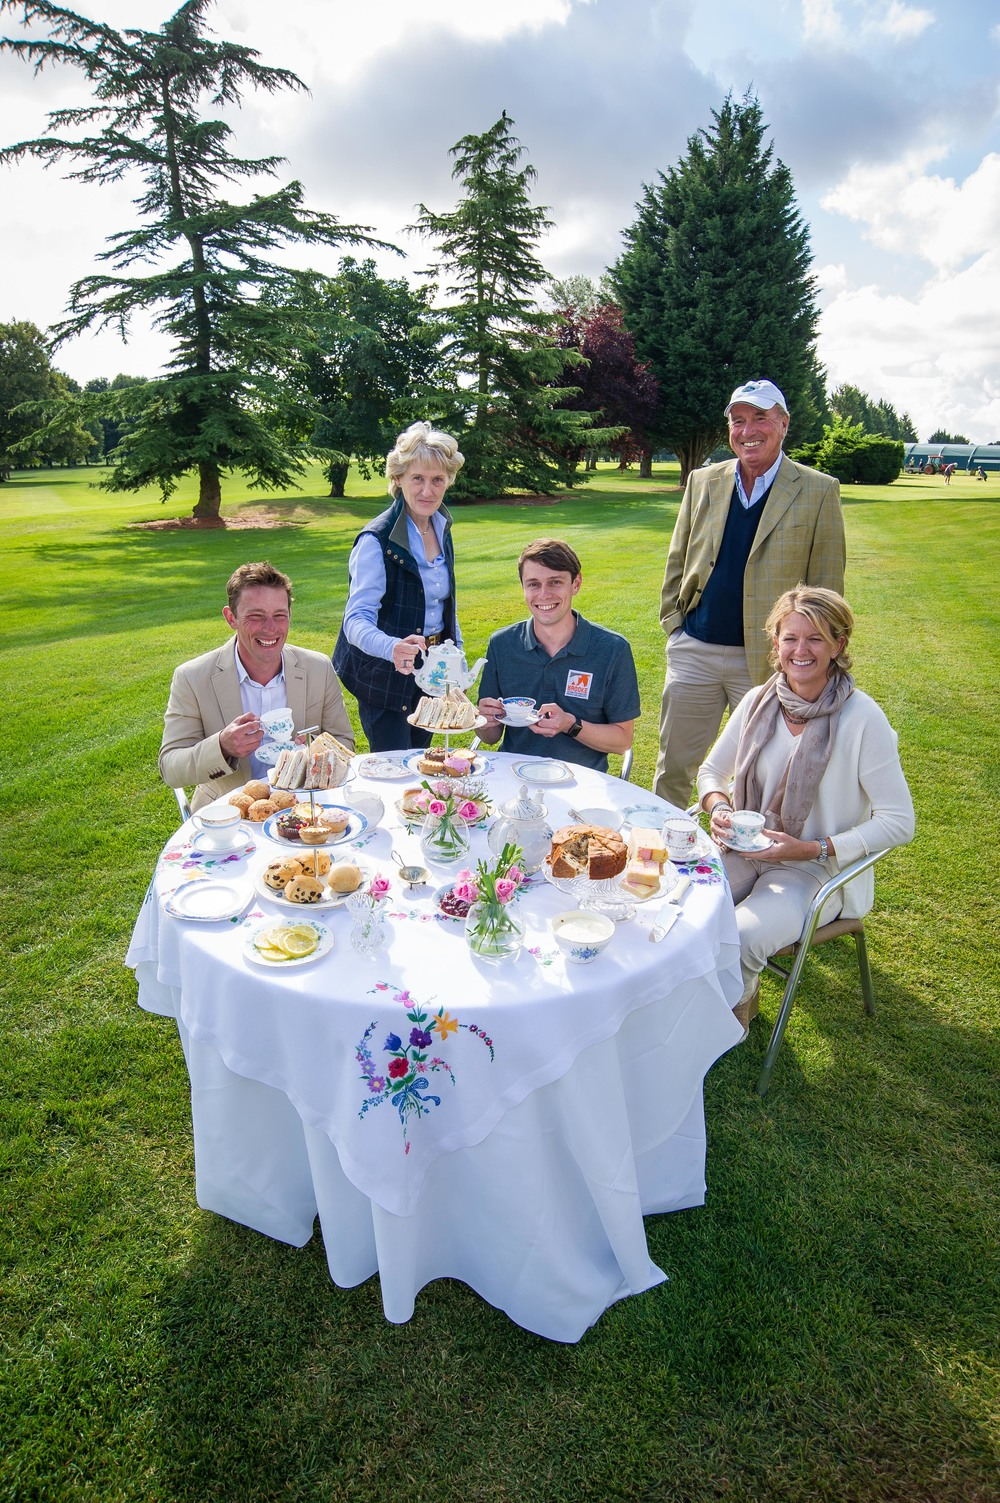 (Left to right) Simon Grieve, event rider,Elizabeth Inman, Event Director for Land Rover Burghley Horse Trials,Jamie Whear, Media Officer at Brooke,Captain Mark Phillips, cross country course Designer,Sarah Cohen, event rider  (Photo: Land Rover Burghley Horse Trials)